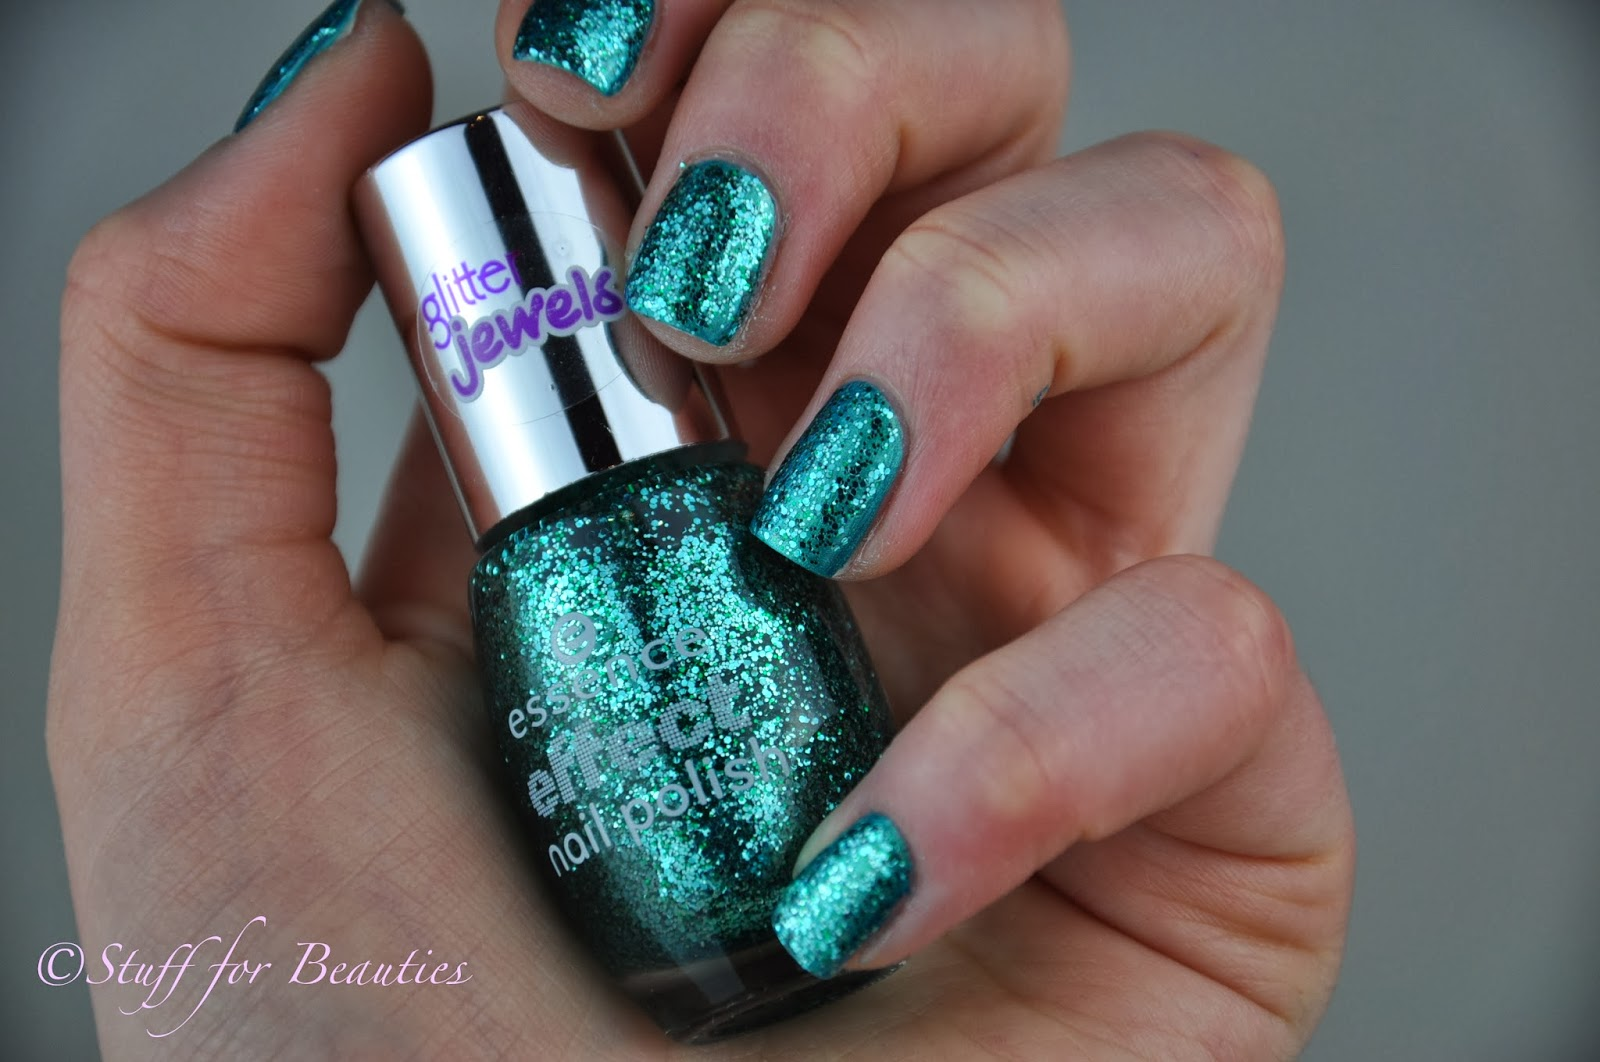 Nagellack Glitzer Essence Effekt Nagellack 06 Party In A Bottle Review